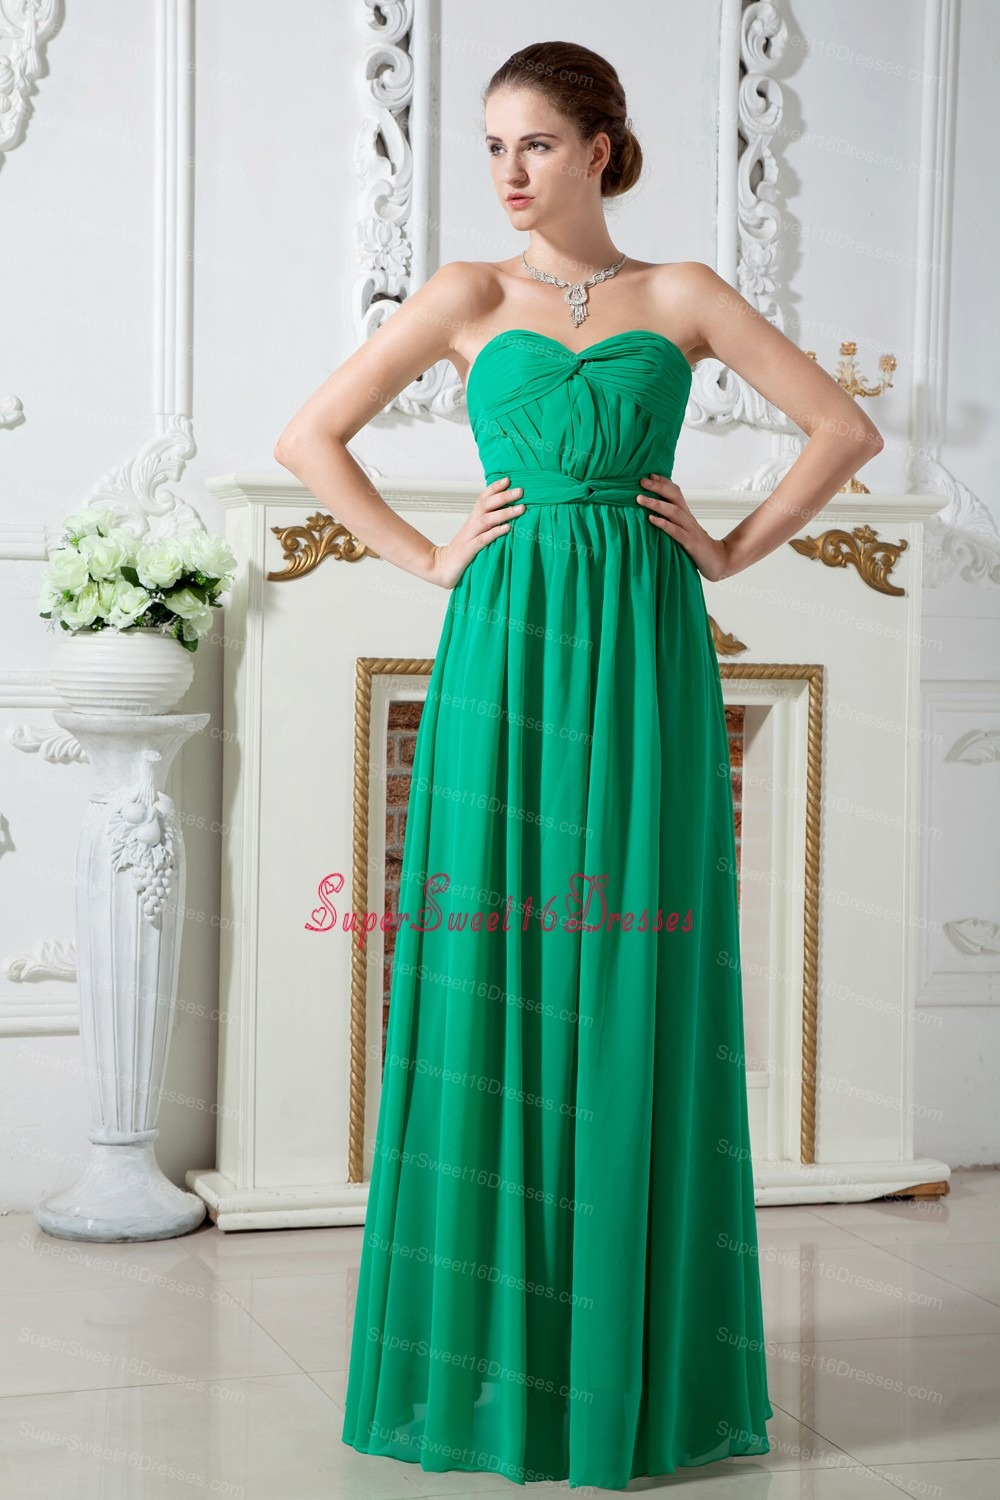 Green Empire Sweetheart Floor-length Chiffon Ruch Dama Dresses for Sweet 16